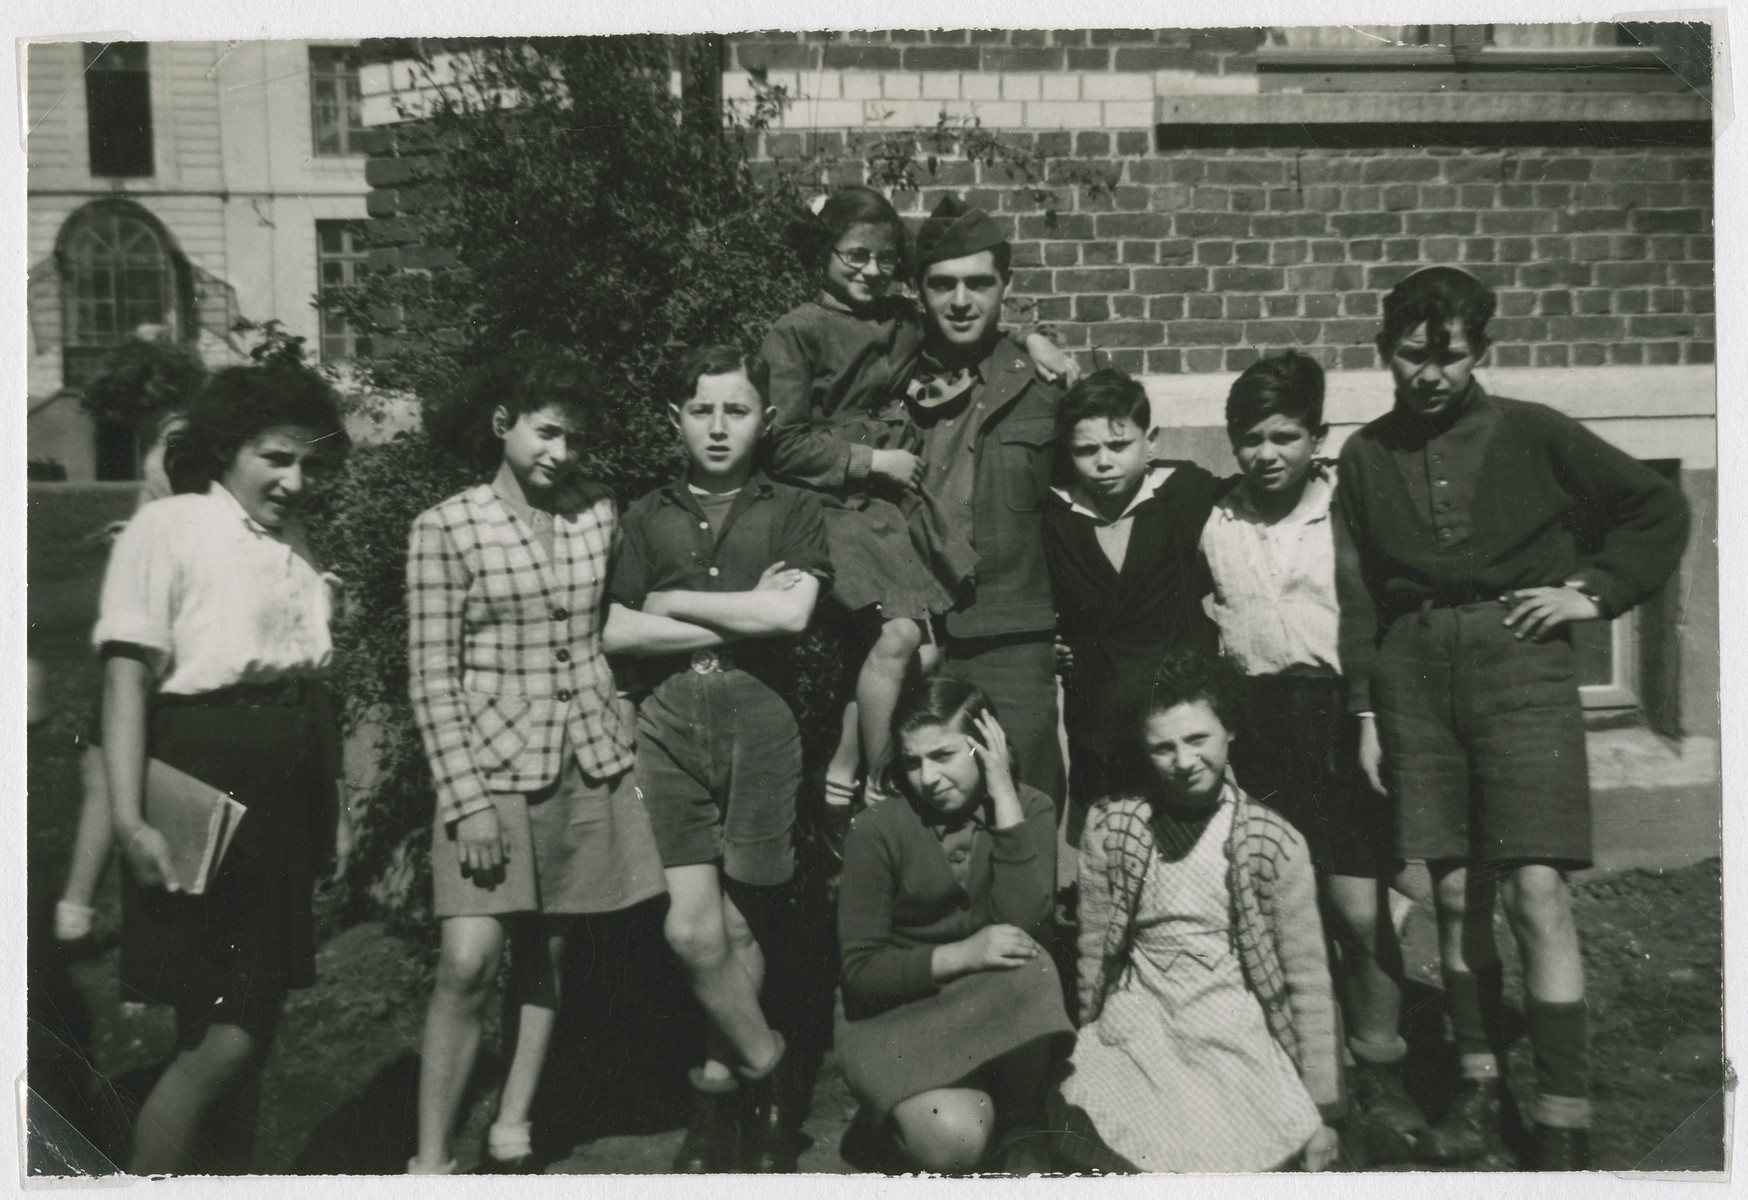 """David Marcus poses with Jewish children in Marquain, Belgium.  The original caption reads: """"Marquain,  Hachsharah.  How children look when comparatively well cared for in a free country.  I just had to get in a pictured with these lovely Jewish children.  They asked for and got a high speed drive with me in my jeep."""""""